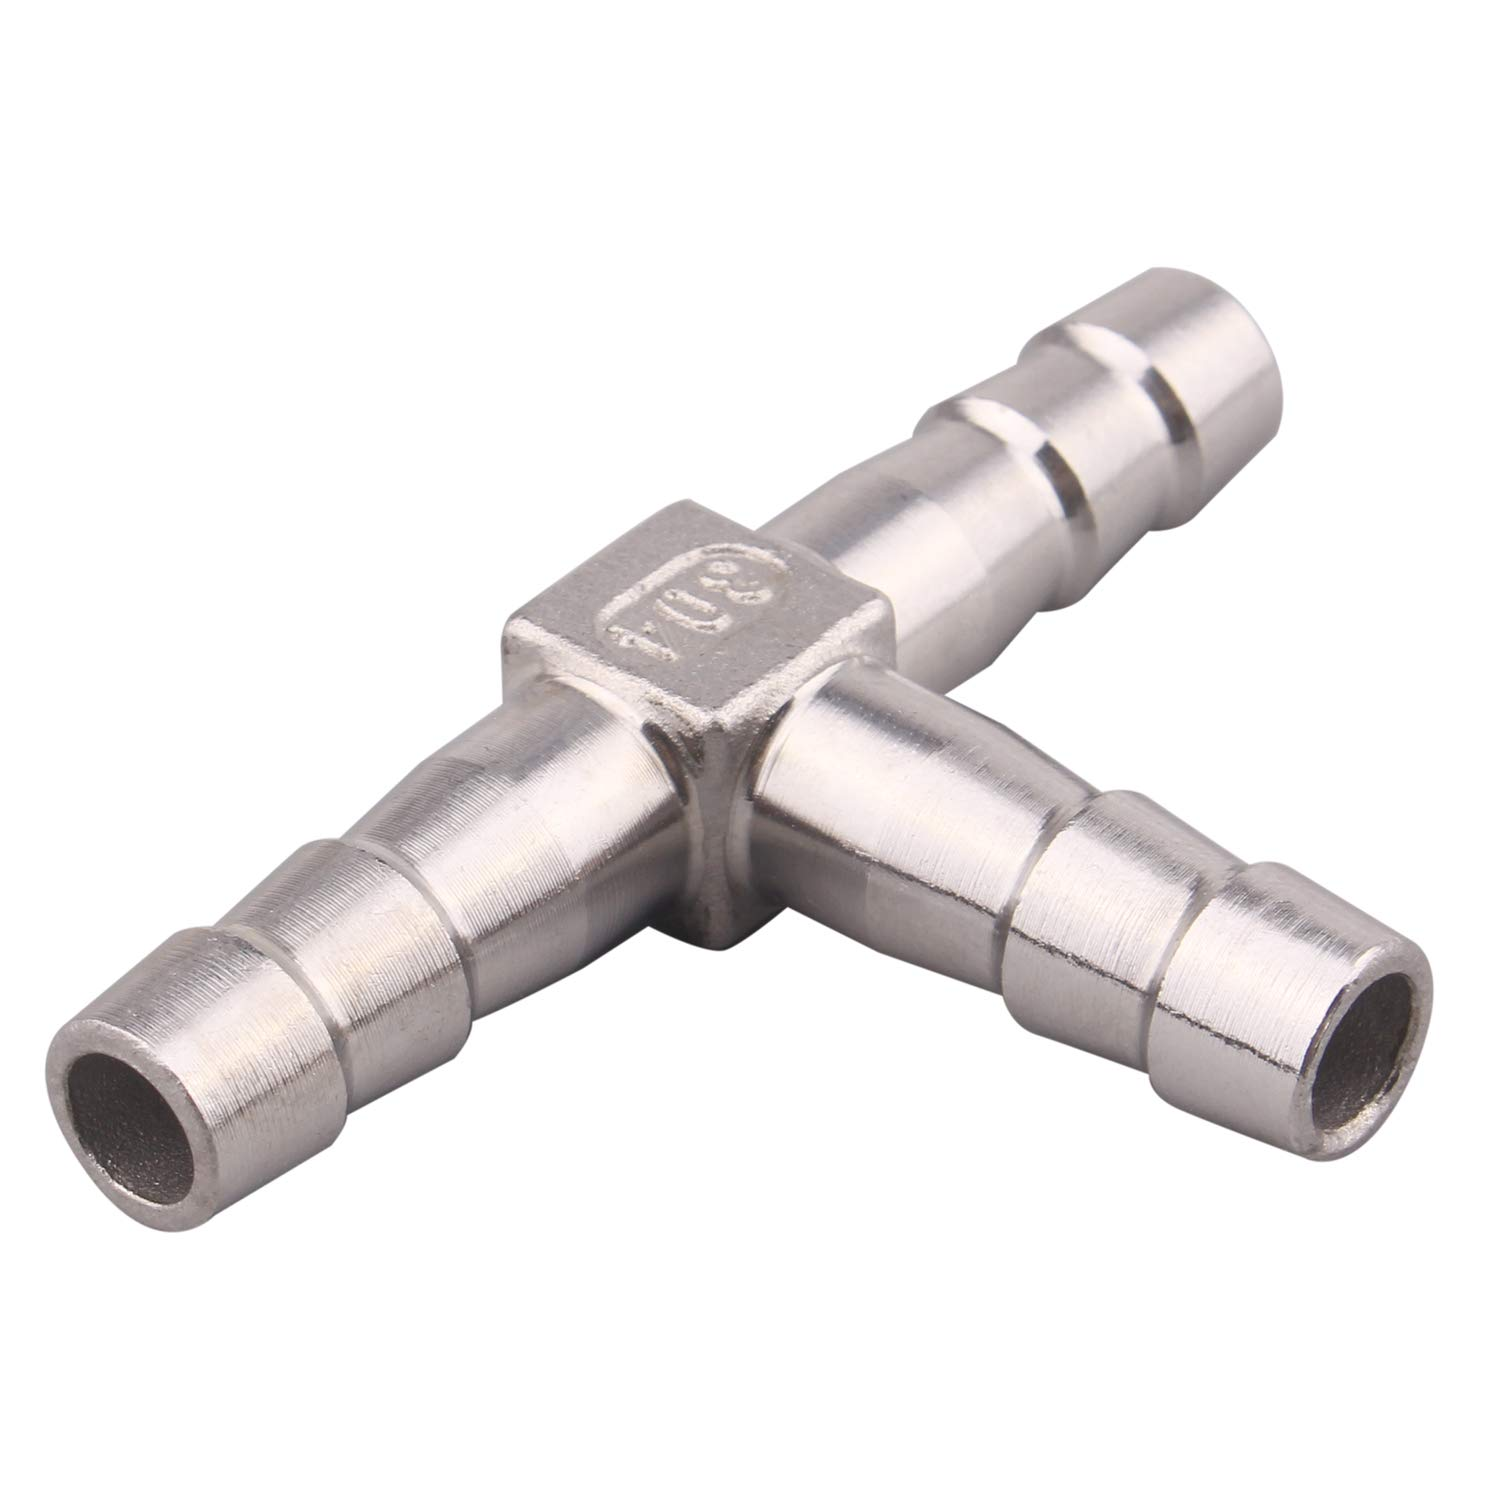 DERPIPE Stainless Steel 5//16 Hose Barb, 3 Way Tee T Shape Union Barbed Splitter Fitting (Pack of 2